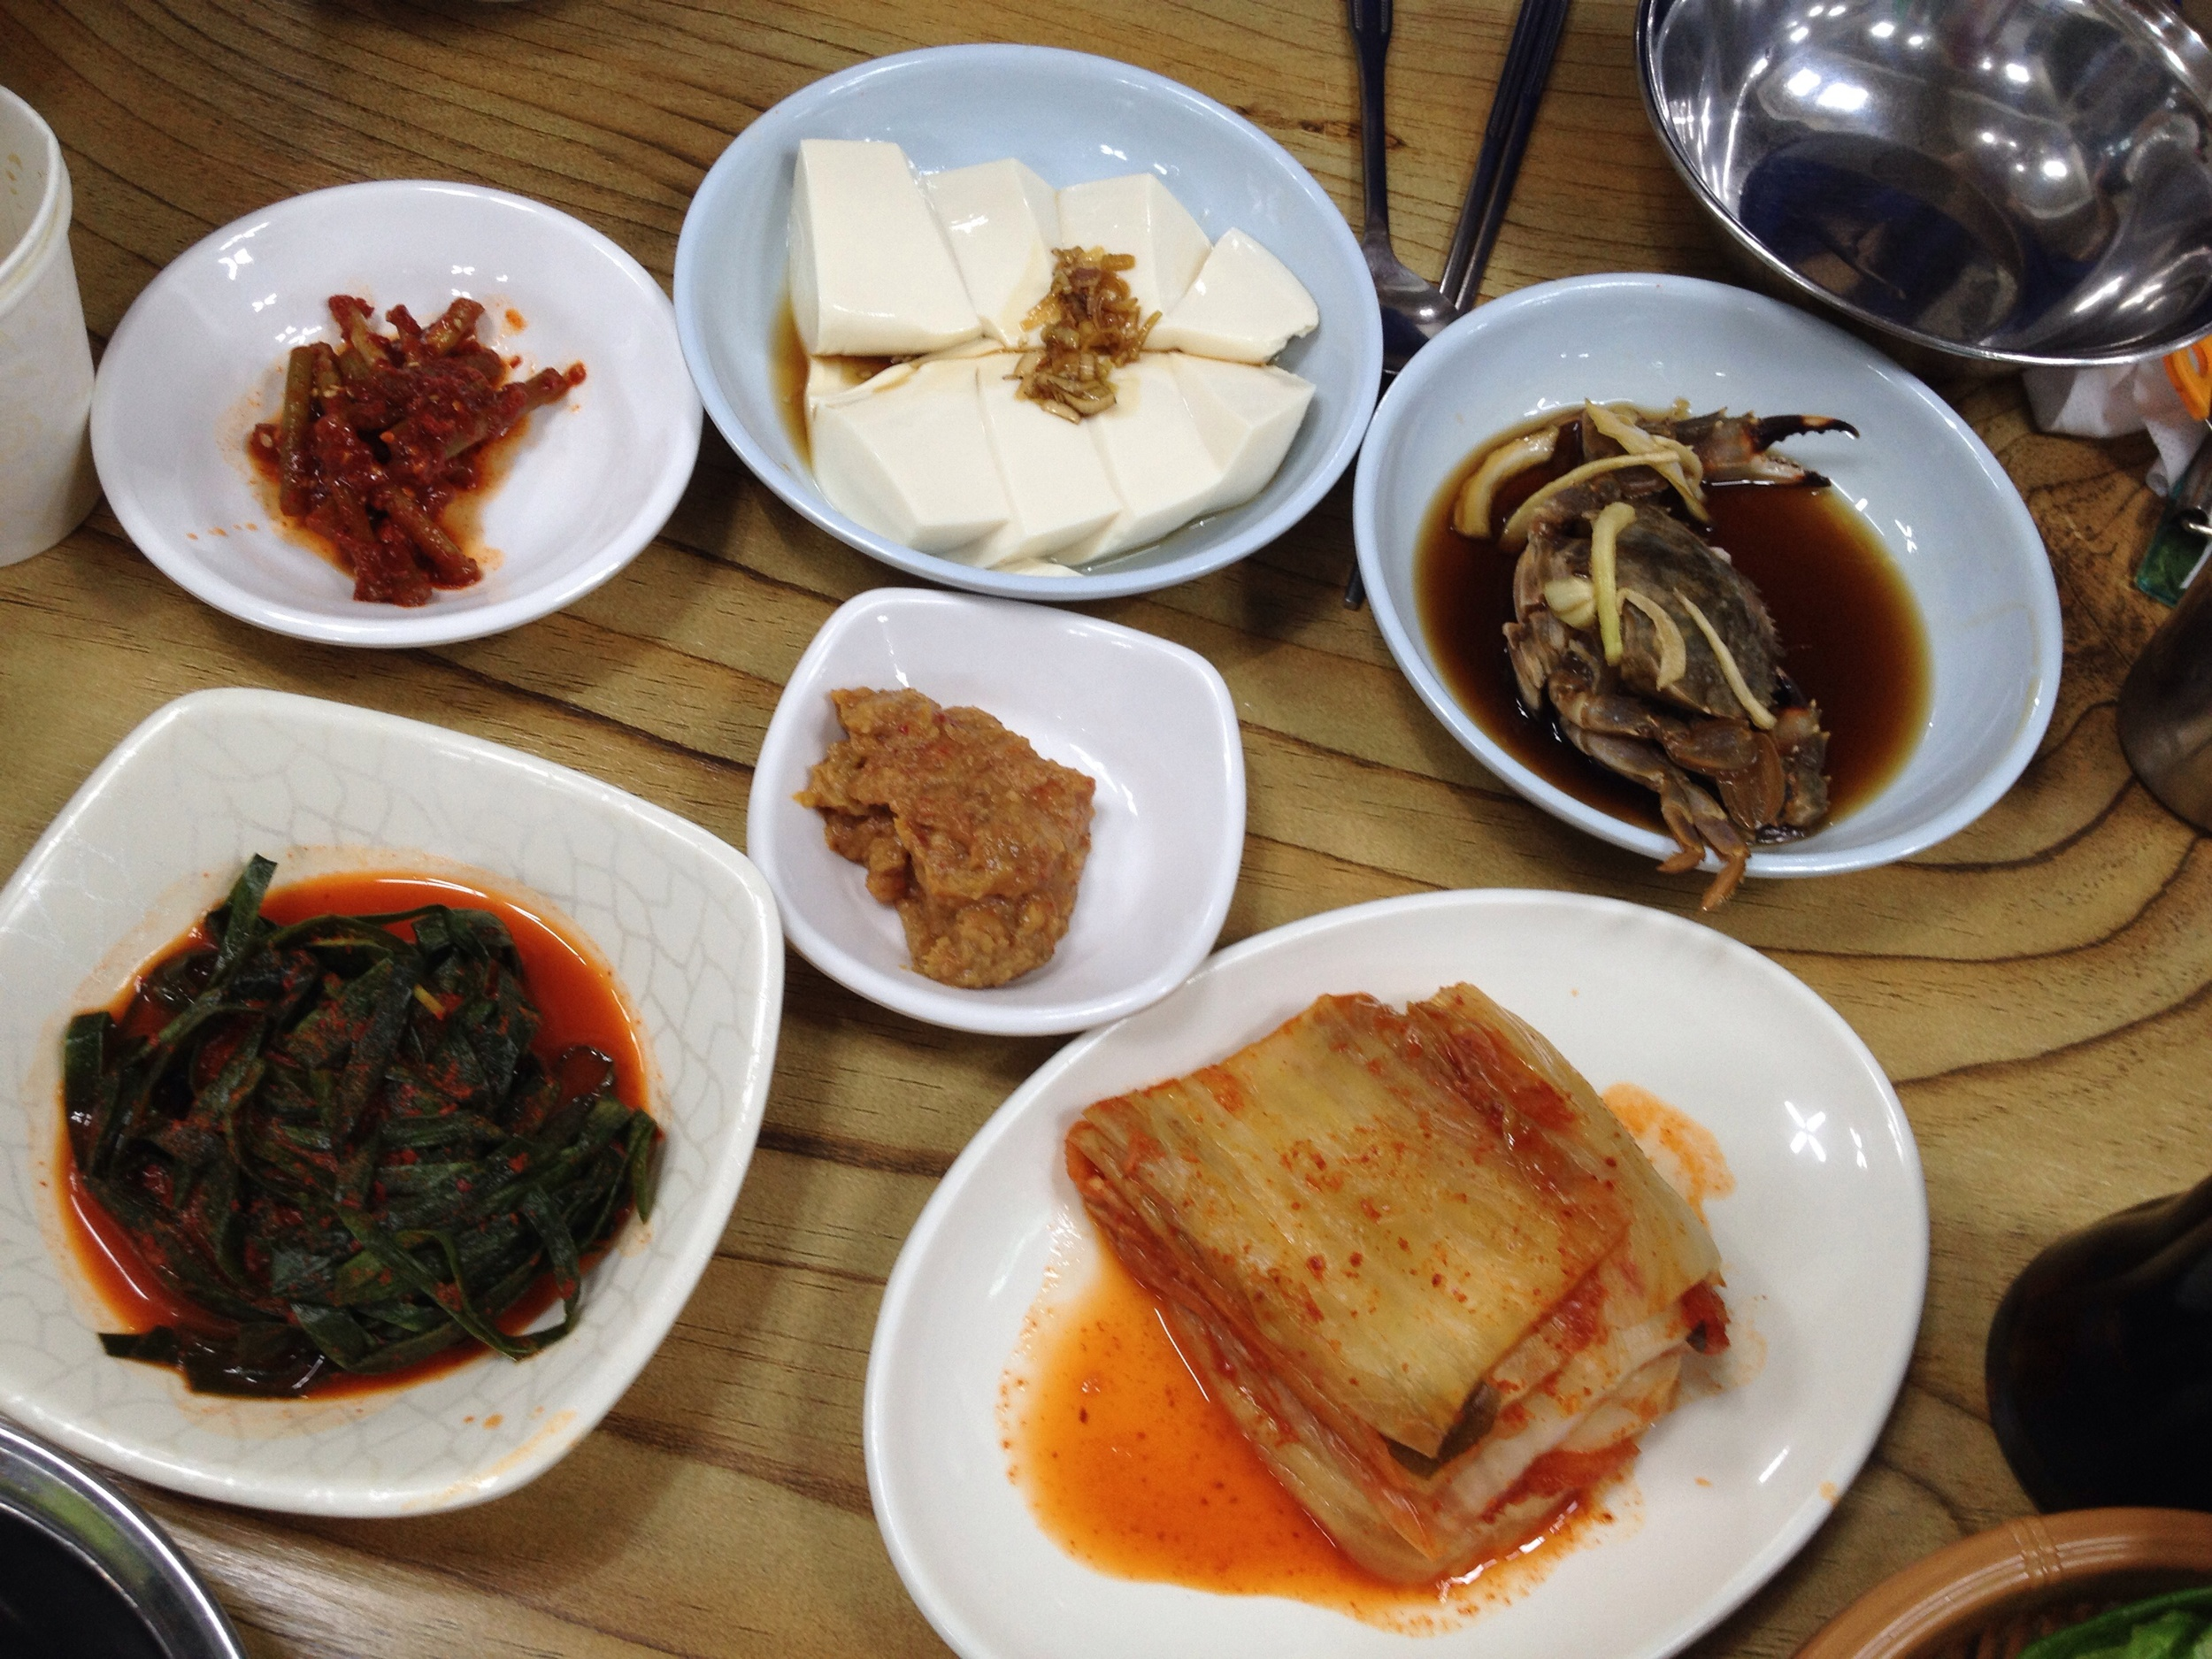 Simple selection of sides dishes. Awesome that they give 간장게장 (GanJangGaeJang) - raw soy sauce marinated crab.